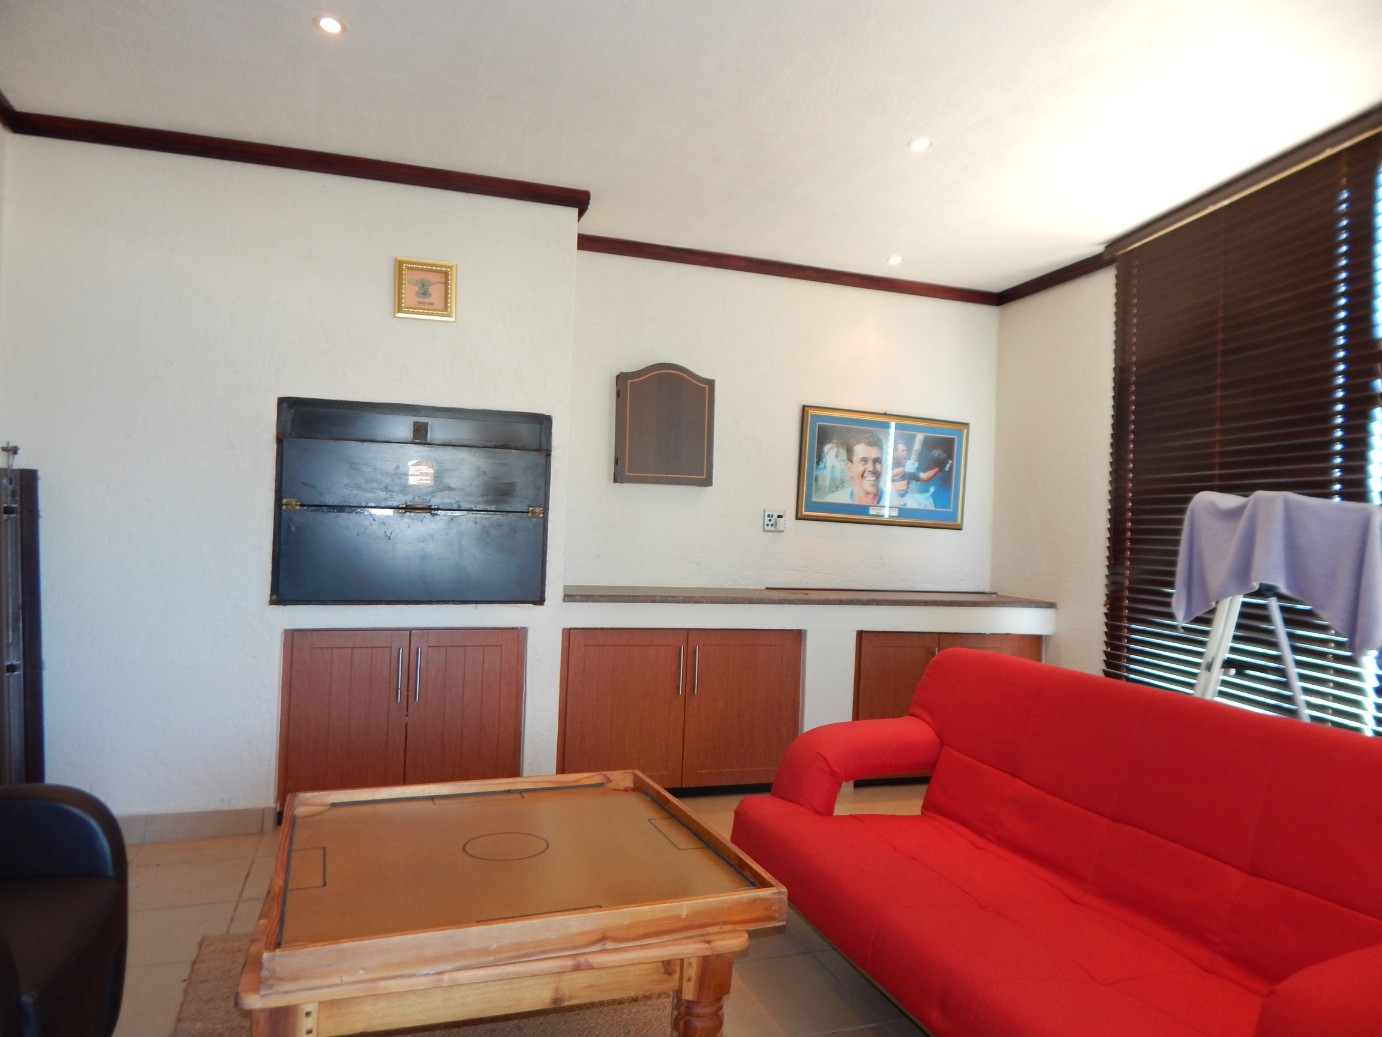 3 Bedroom Apartment for sale in Diaz Beach ENT0043723 : photo#8